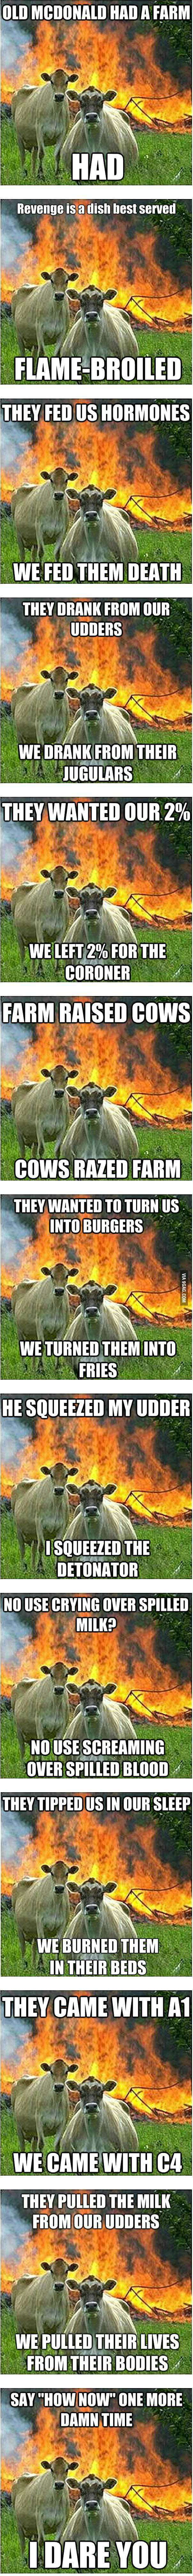 The best of Evil Cow